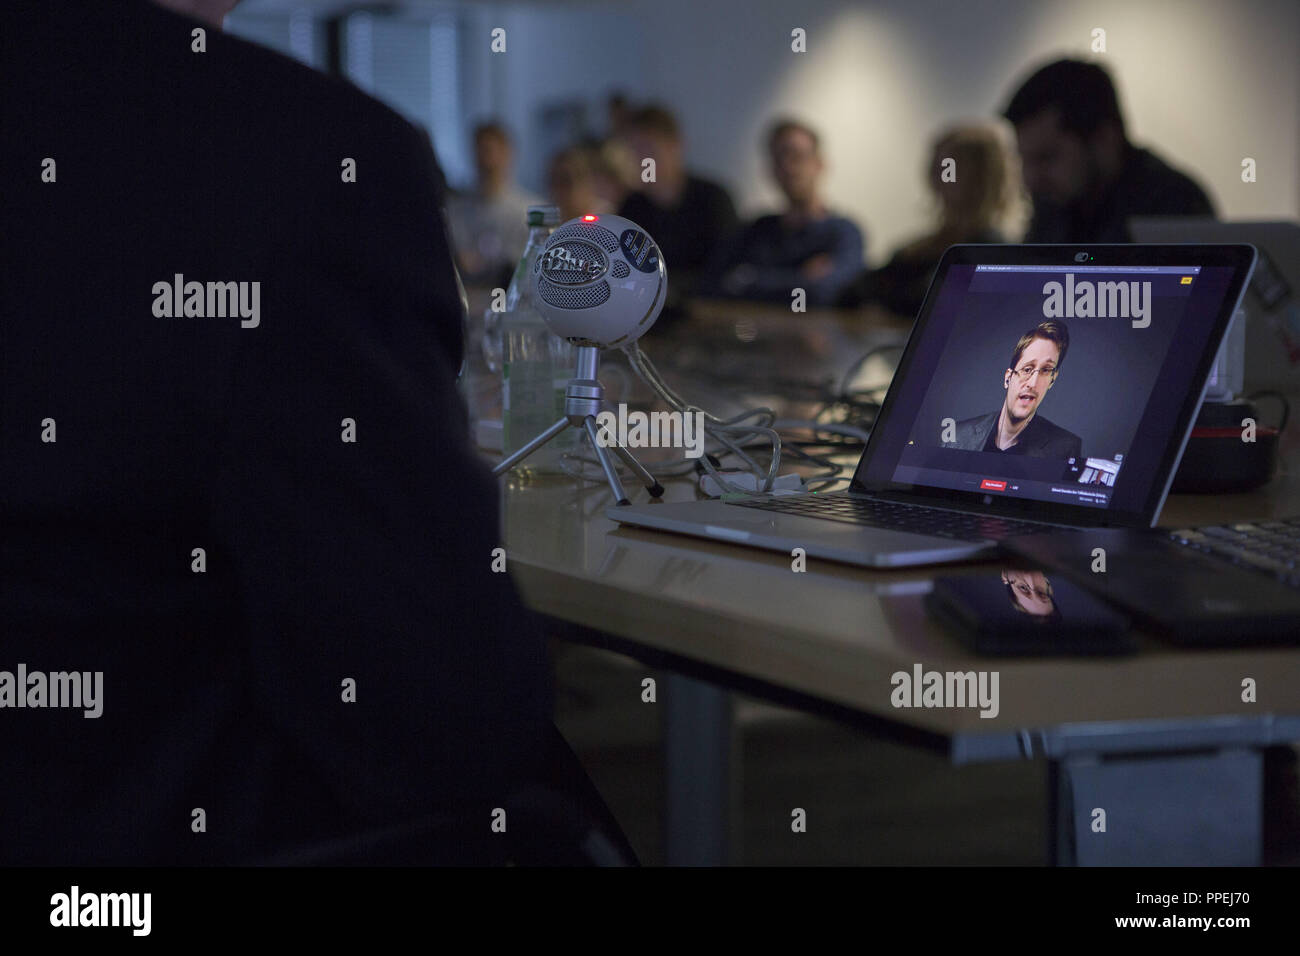 As part of the Editor'S Lab Congress of the Sueddeutsche Zeitung (SZ) and the Global Editors Network (GEN), the US-American journalist and GEN board member Dan Gillmor (left) conducts a virtual live interview with the whistleblower Edward Snowden. - Stock Image